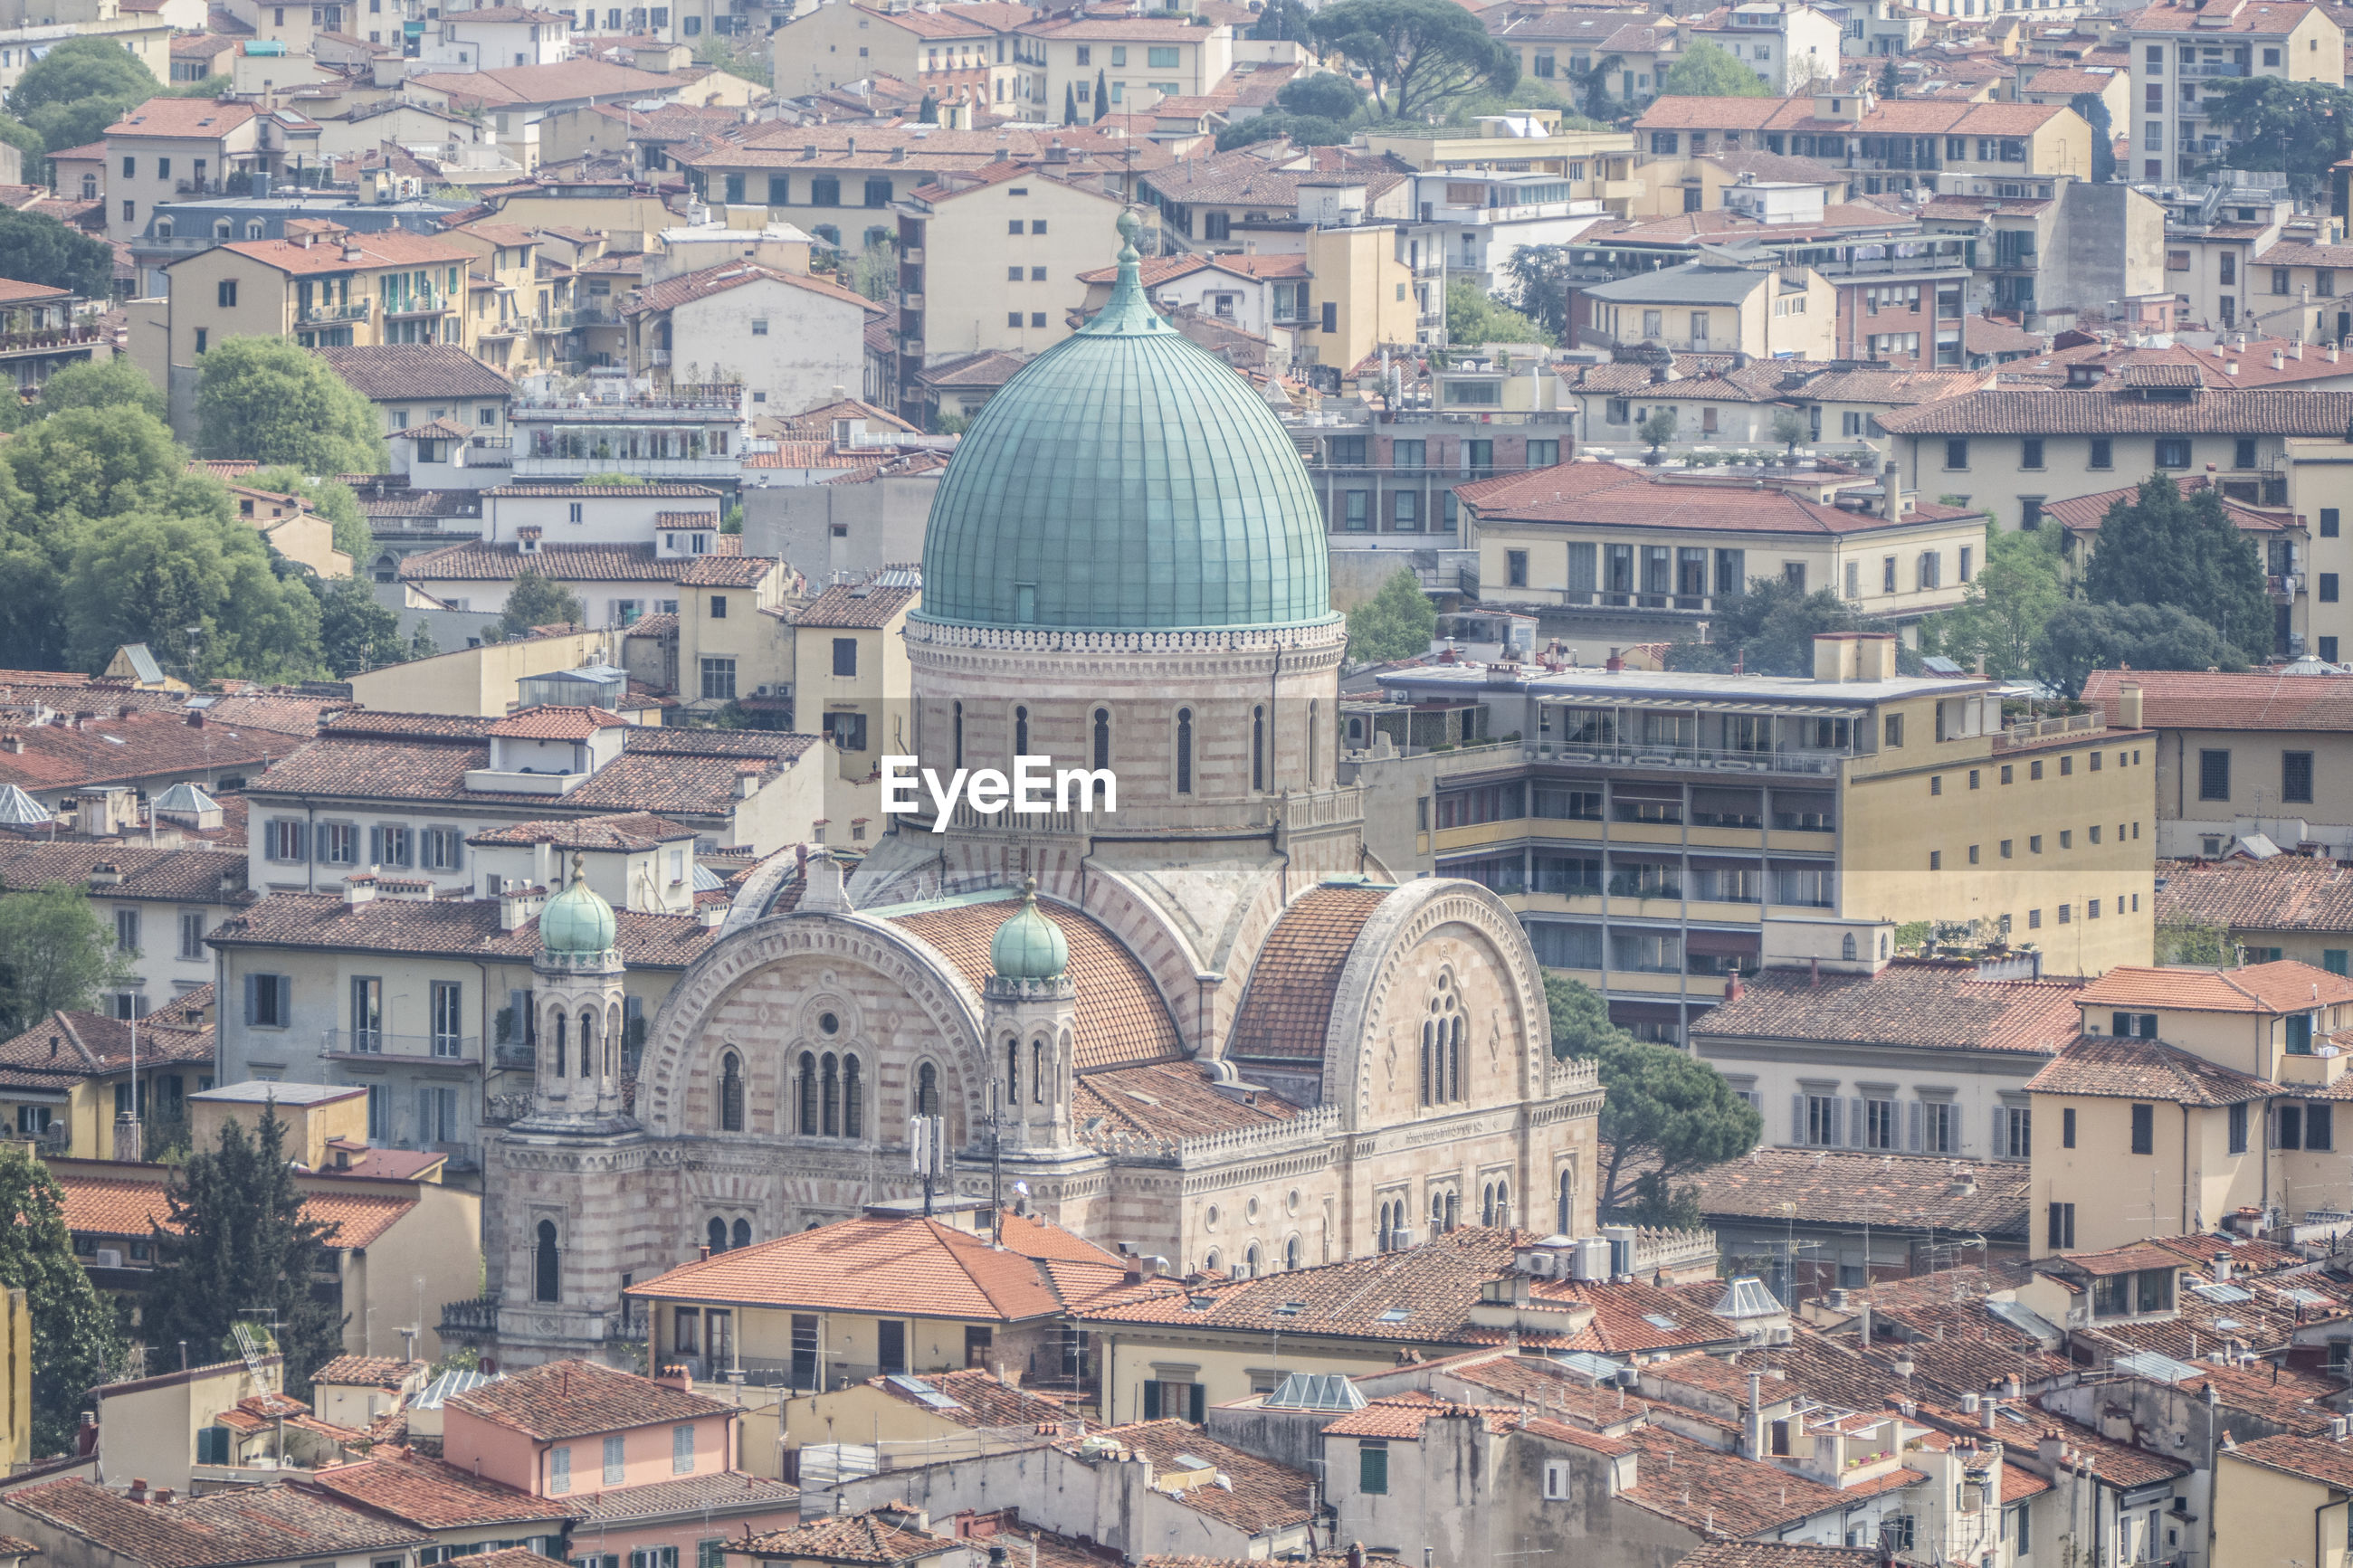 Synagogue of florence seen from above